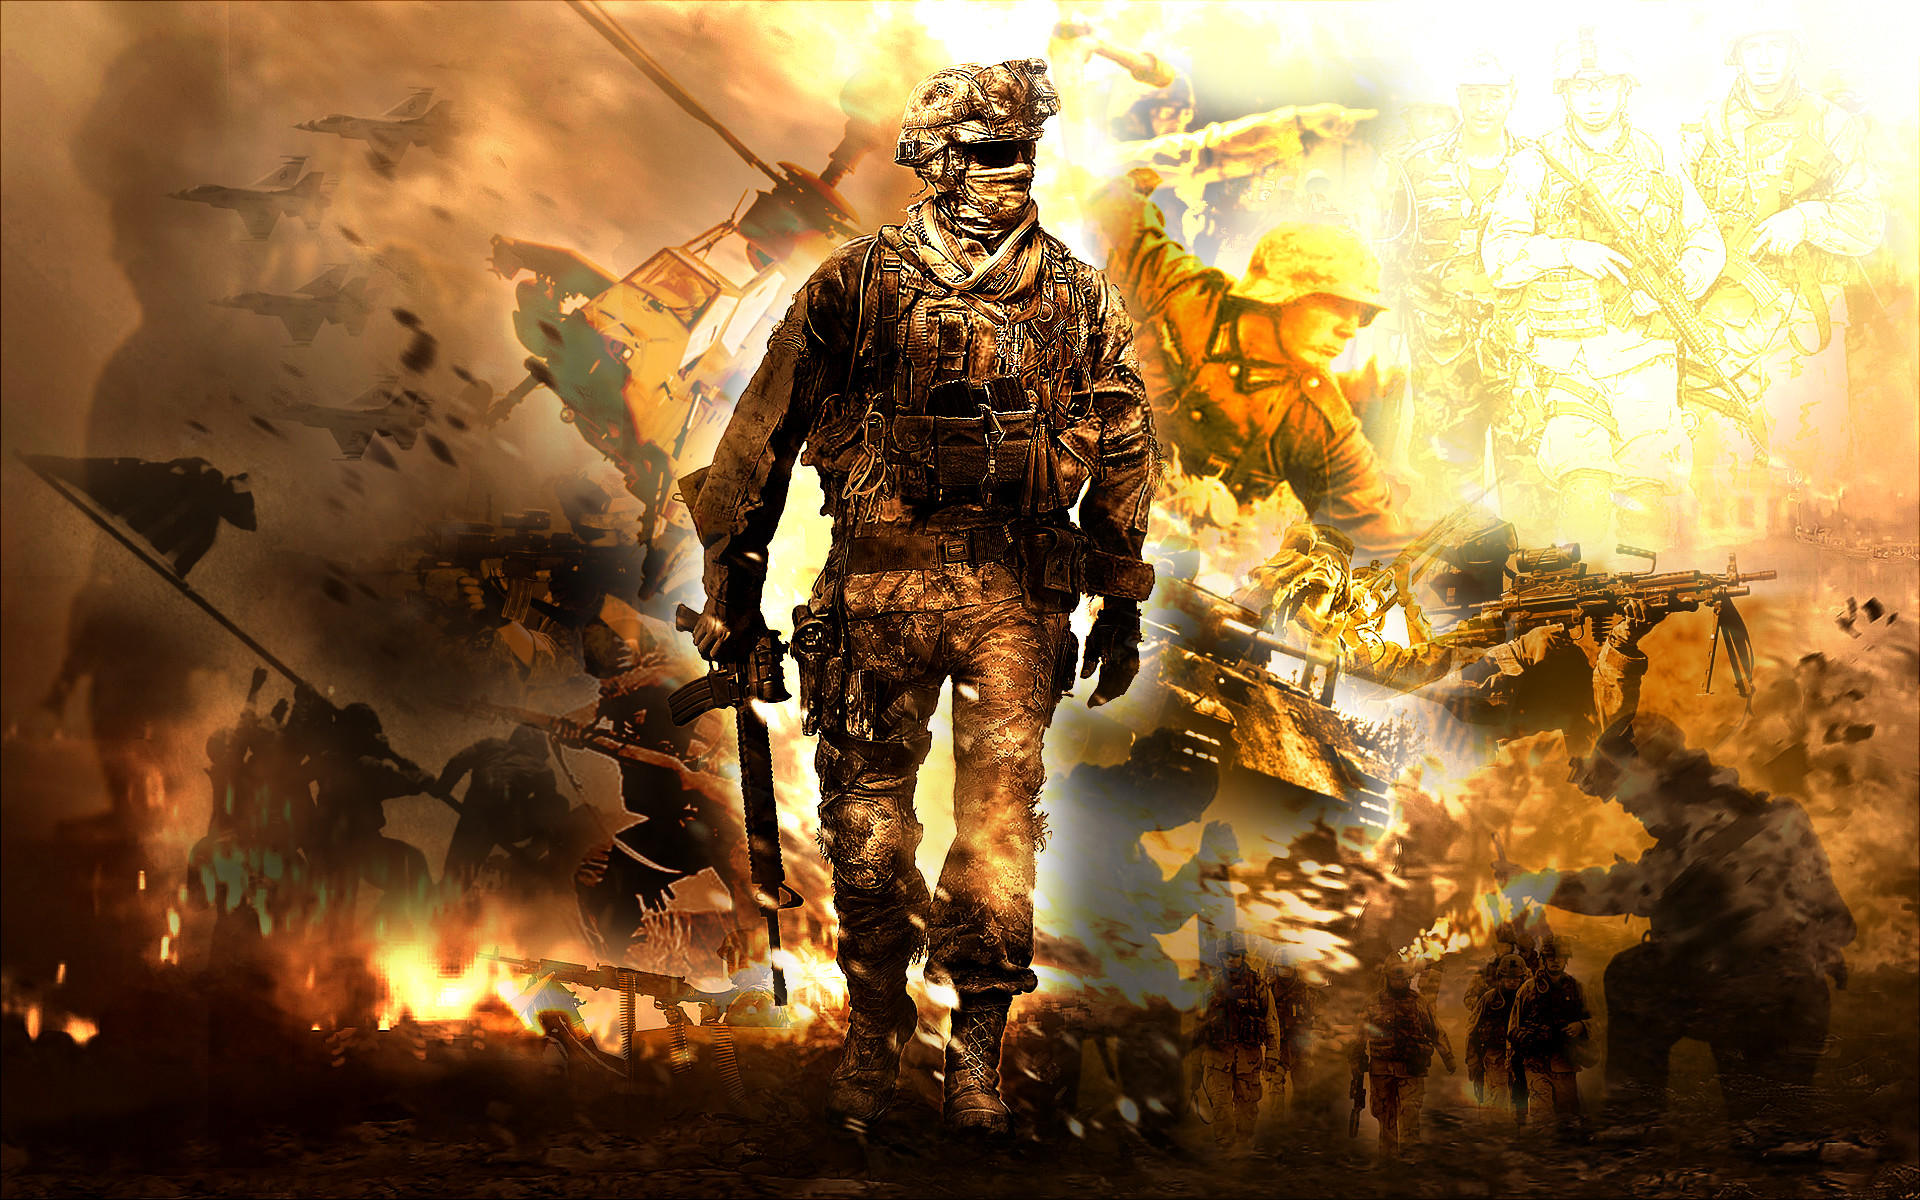 Badass Military Backgrounds Some sort of really bad ass